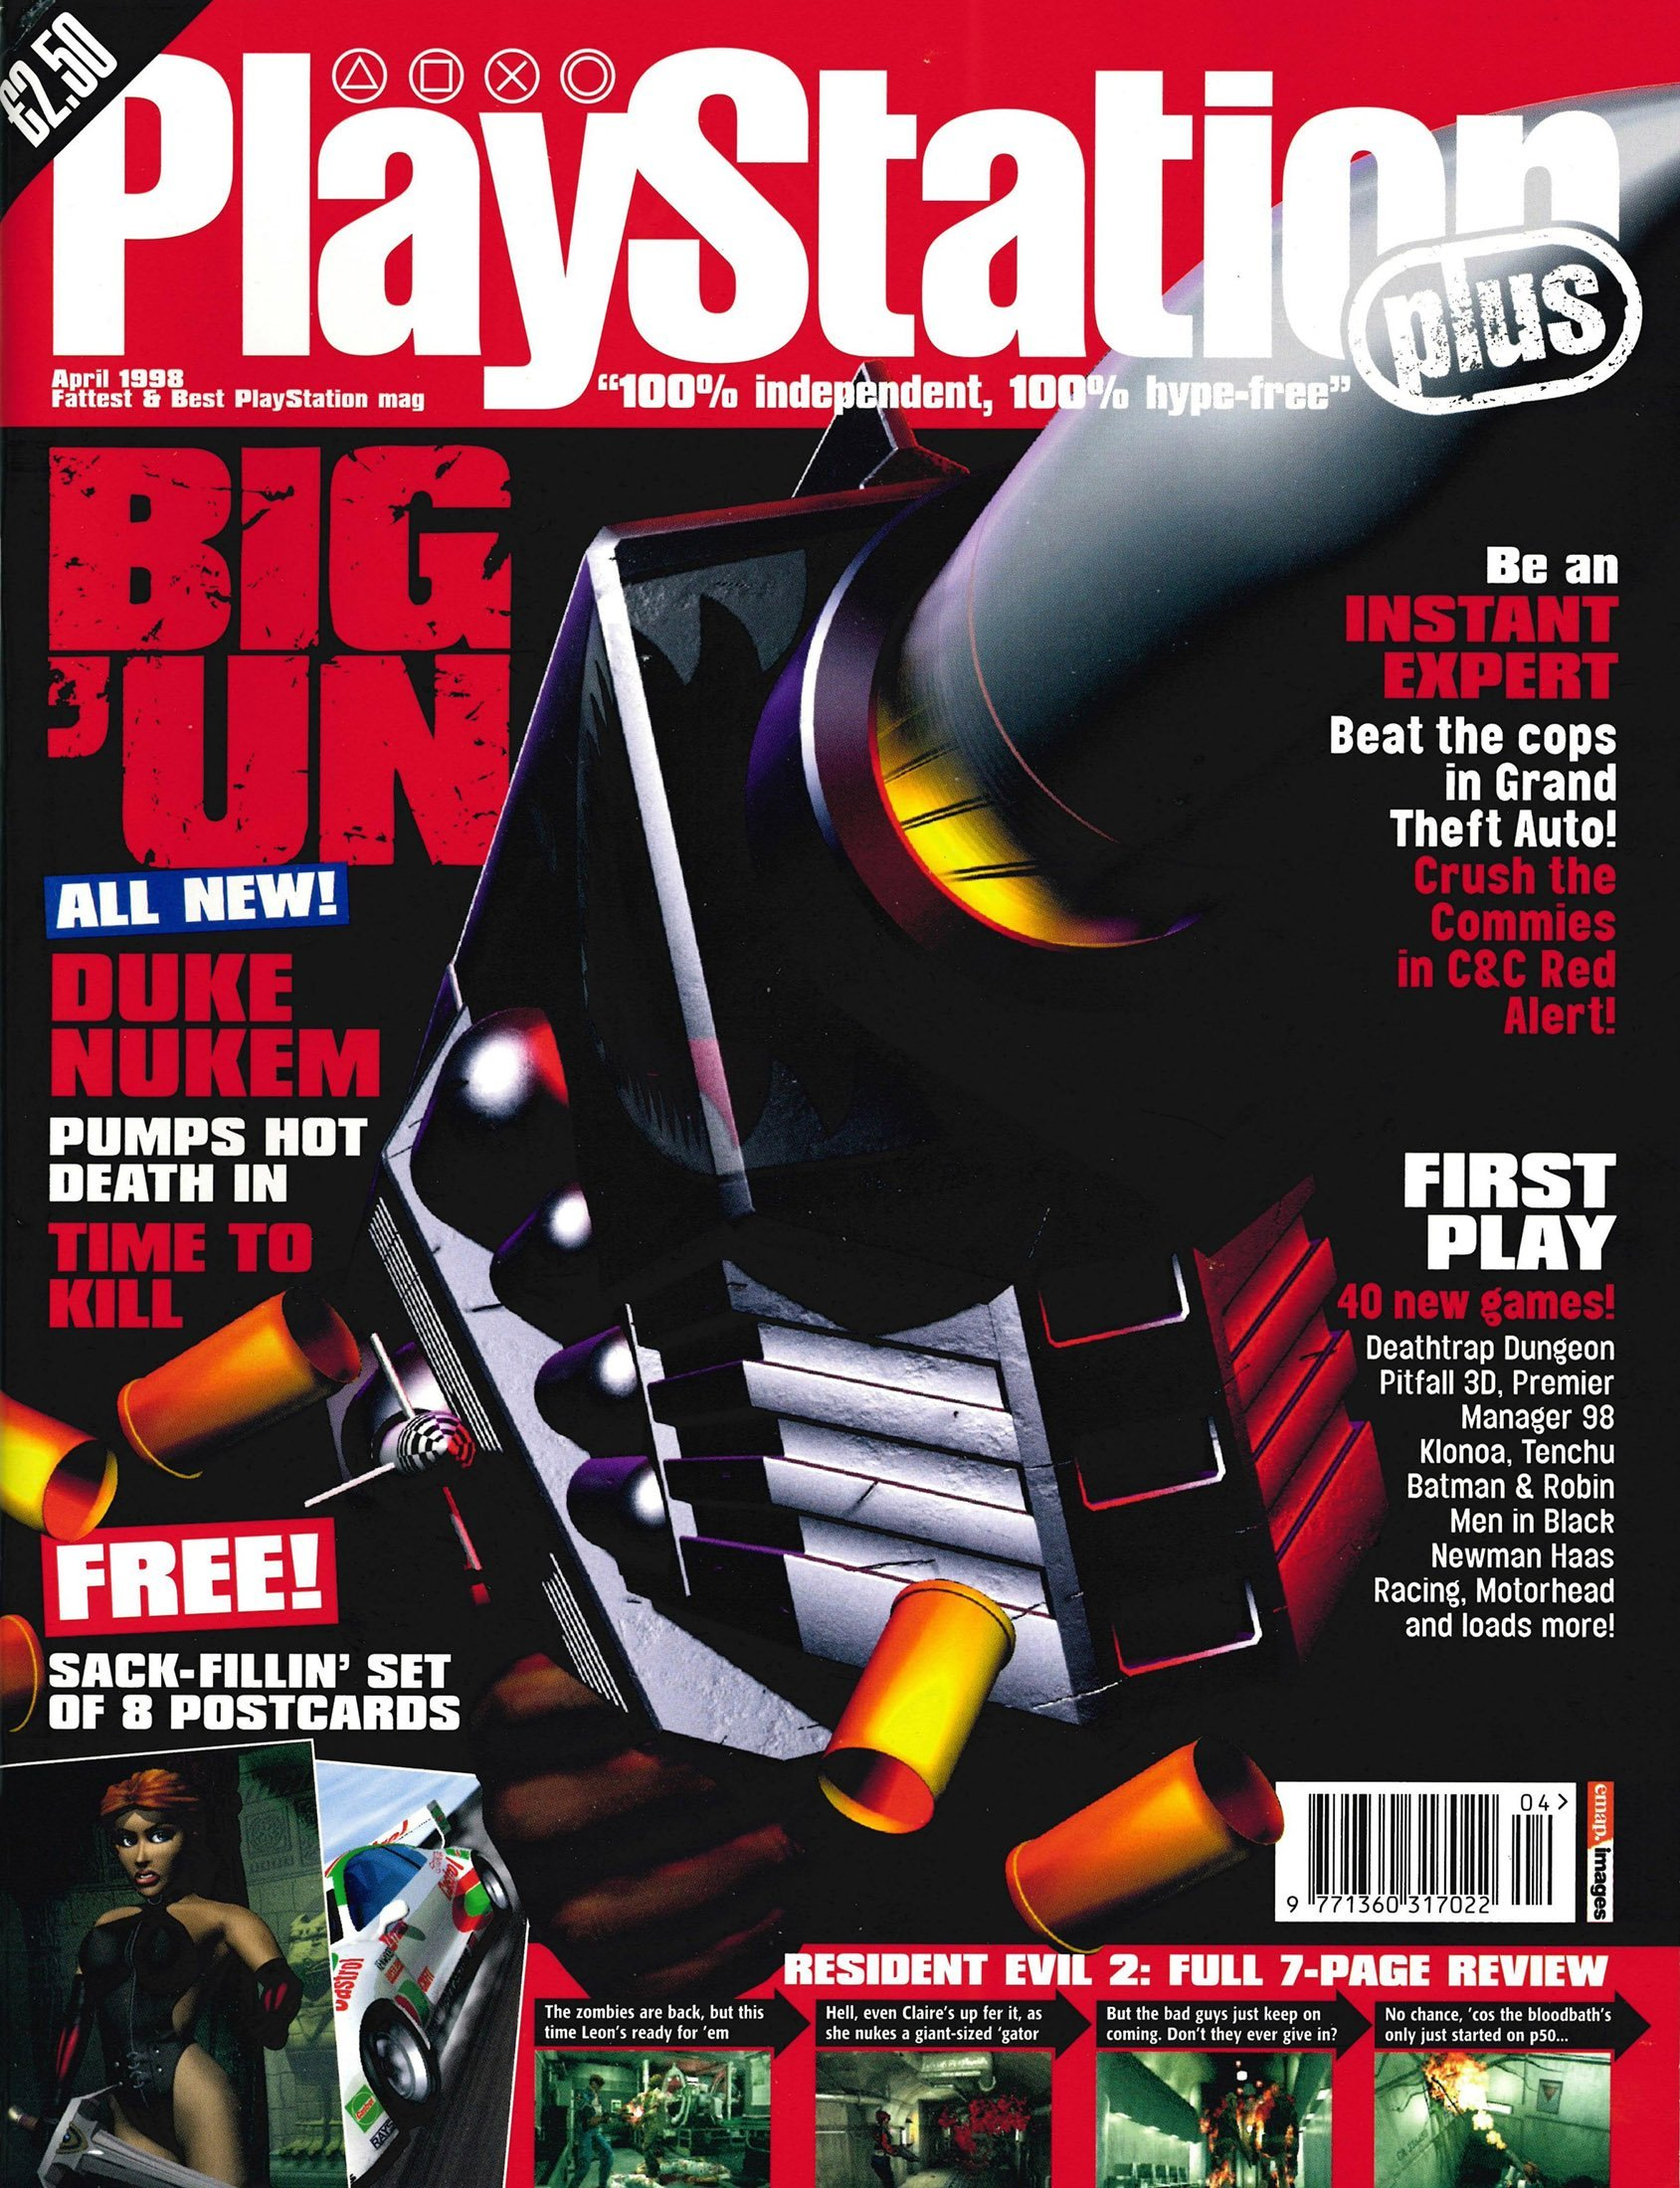 PlayStation Plus Issue 031 (April 1998)